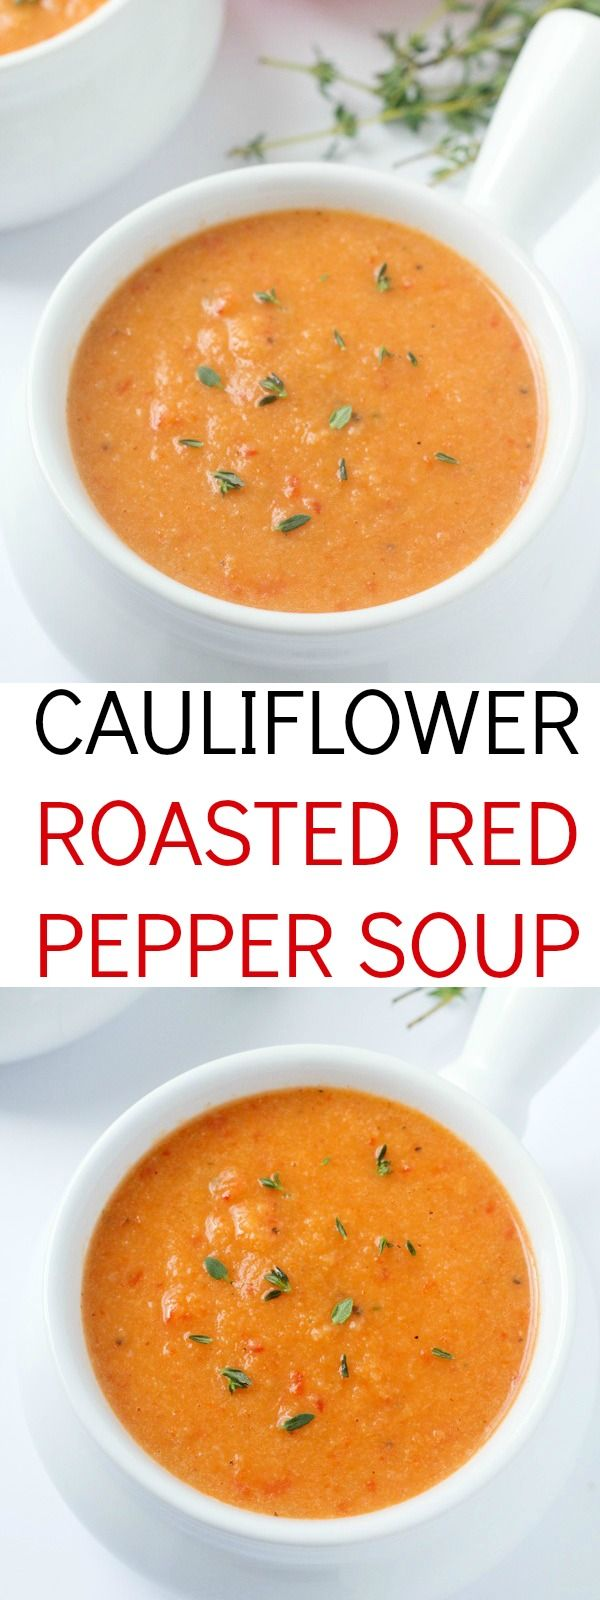 An out-of-this-world delicious cauliflower roasted red pepper soup recipe!